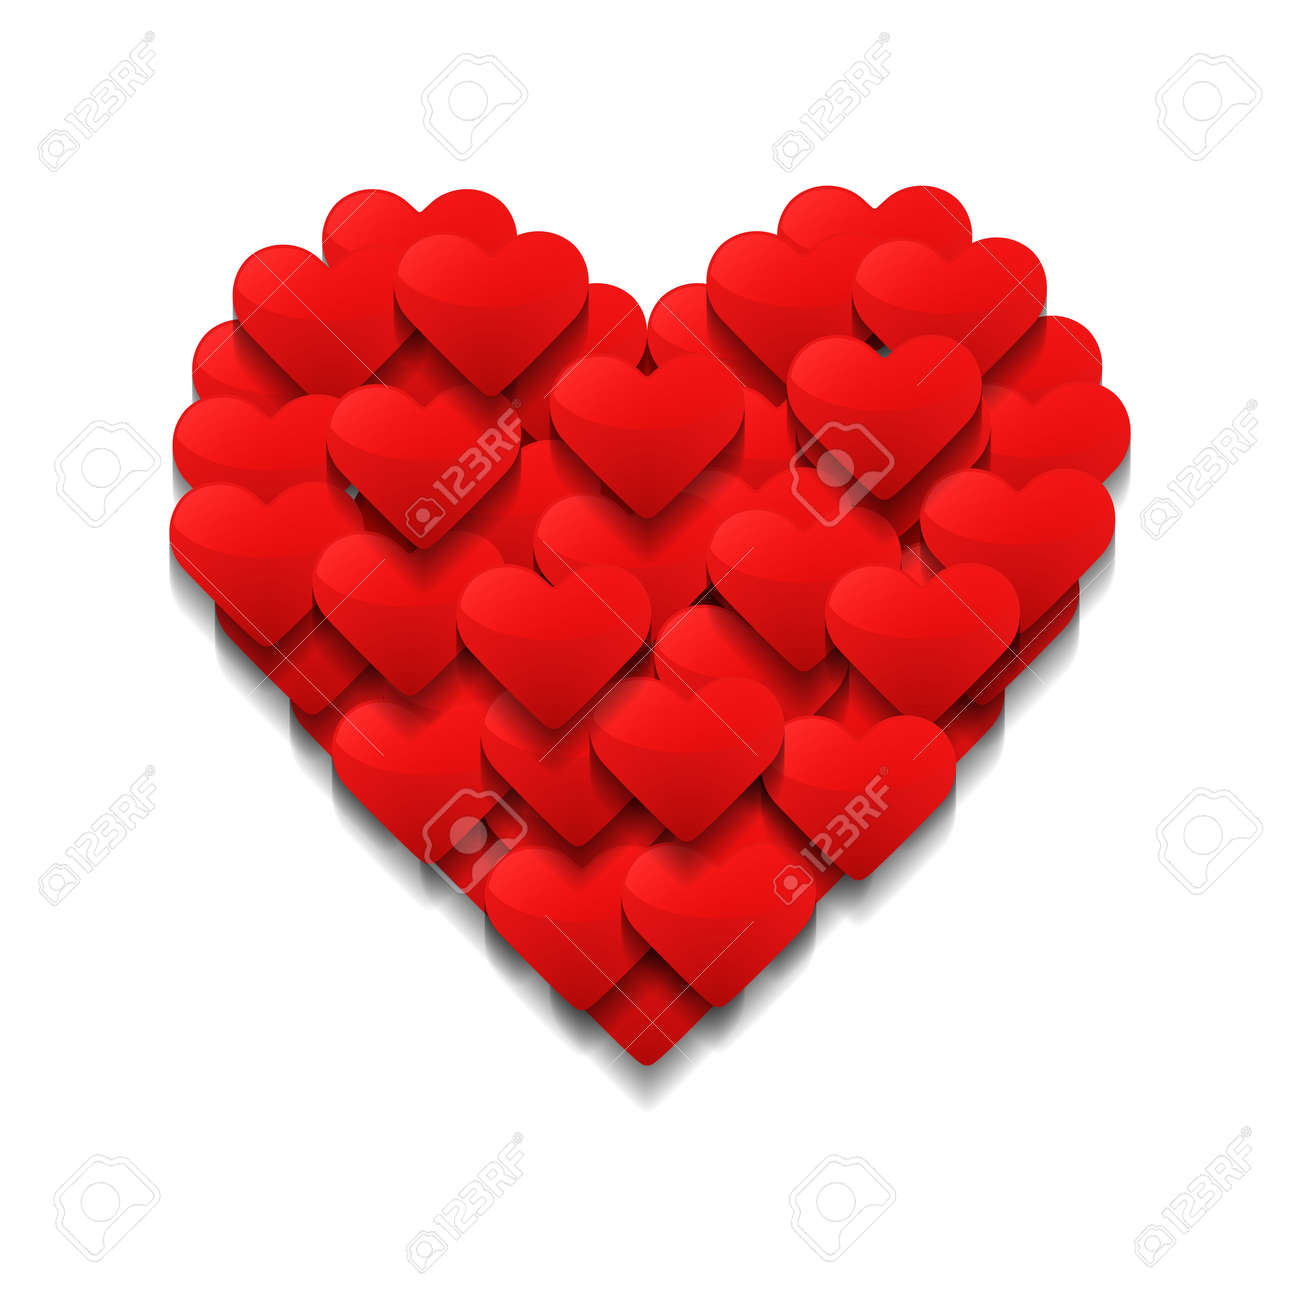 Little Hearts Form A Big Heart. Valentine's Day Concept. Vector ...